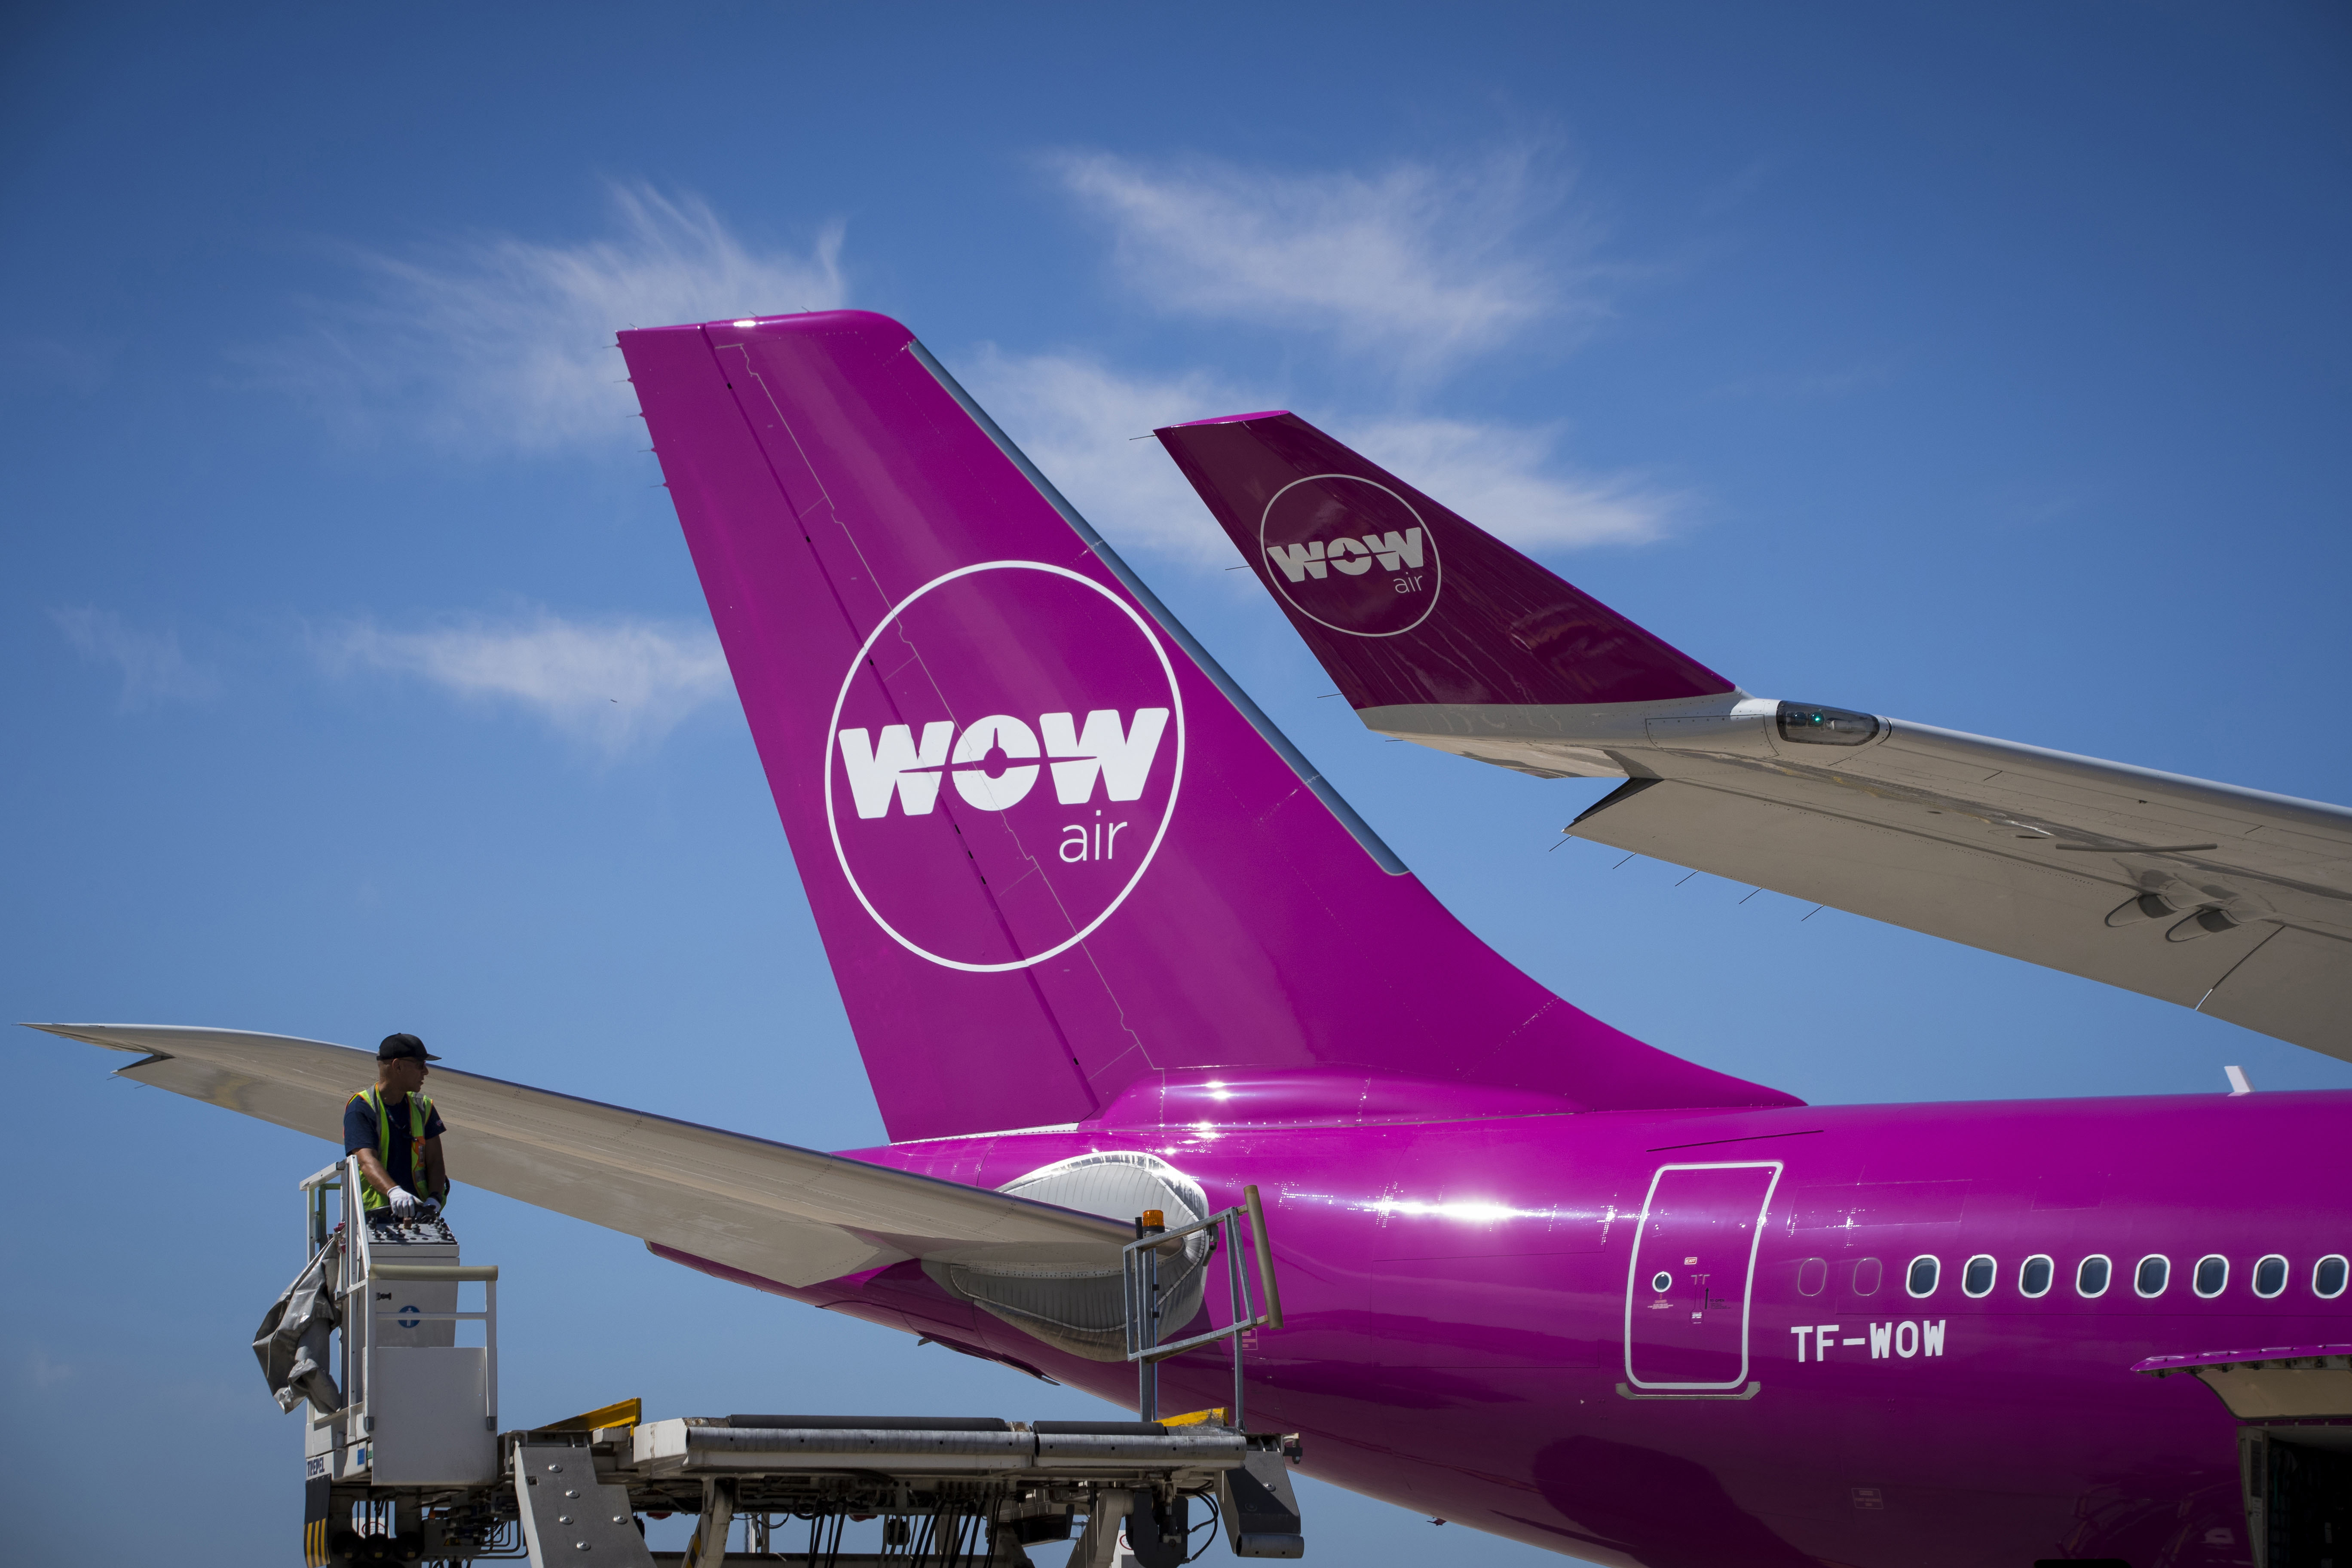 Wow Air shutdown: Stranded passengers in Iceland react to airline